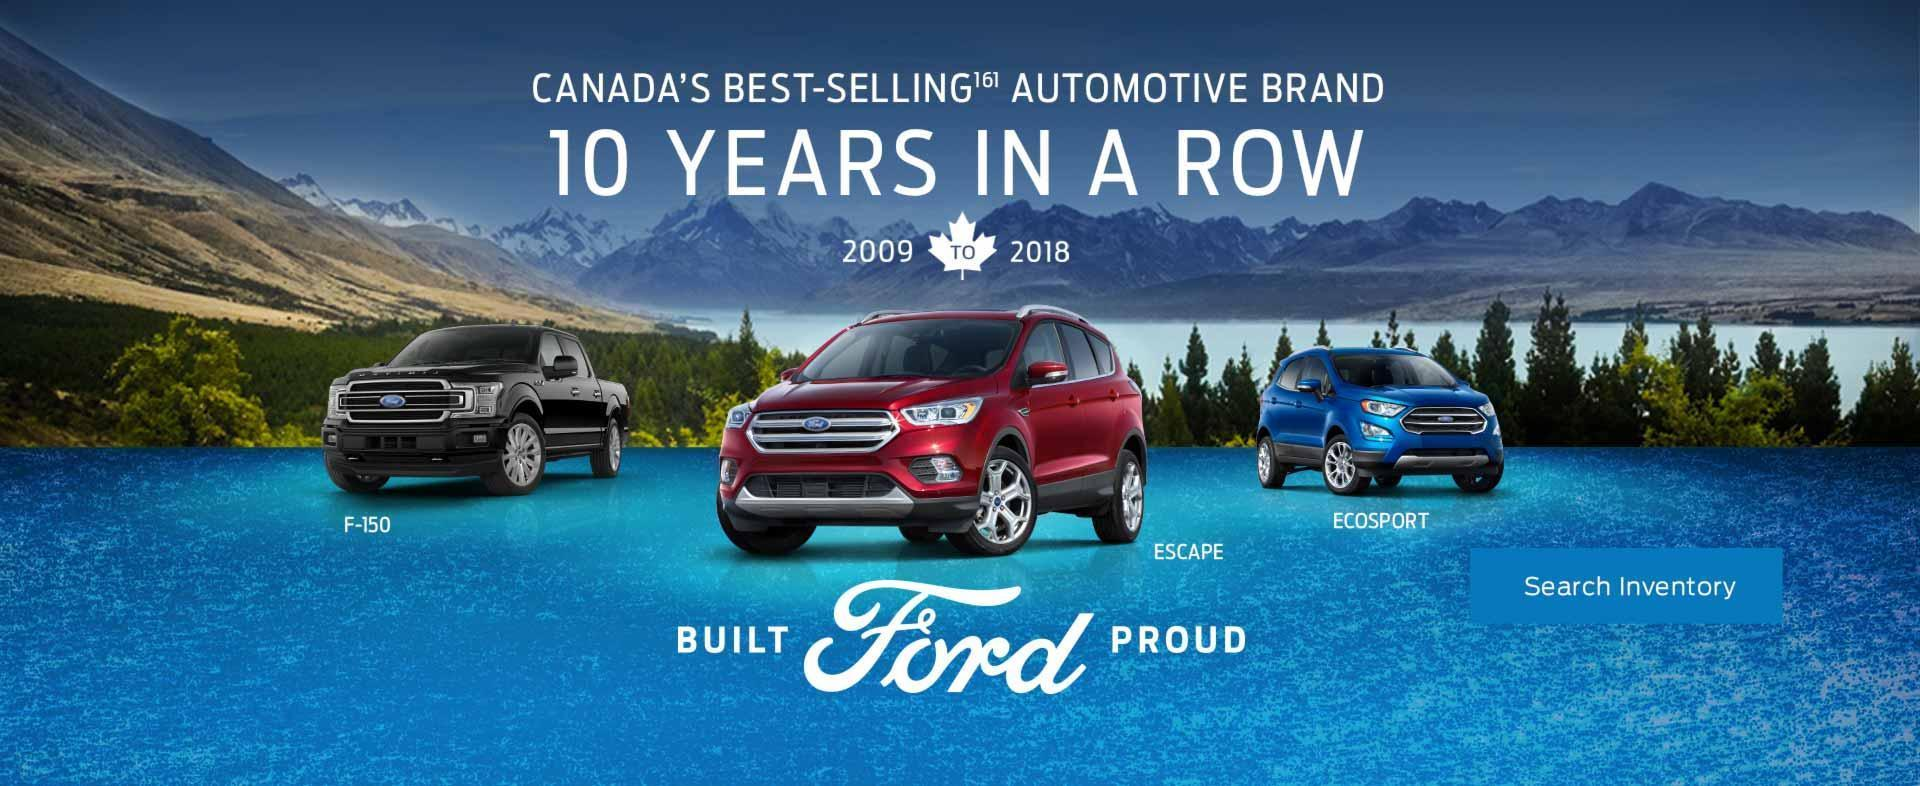 Ford 10 Years in a row